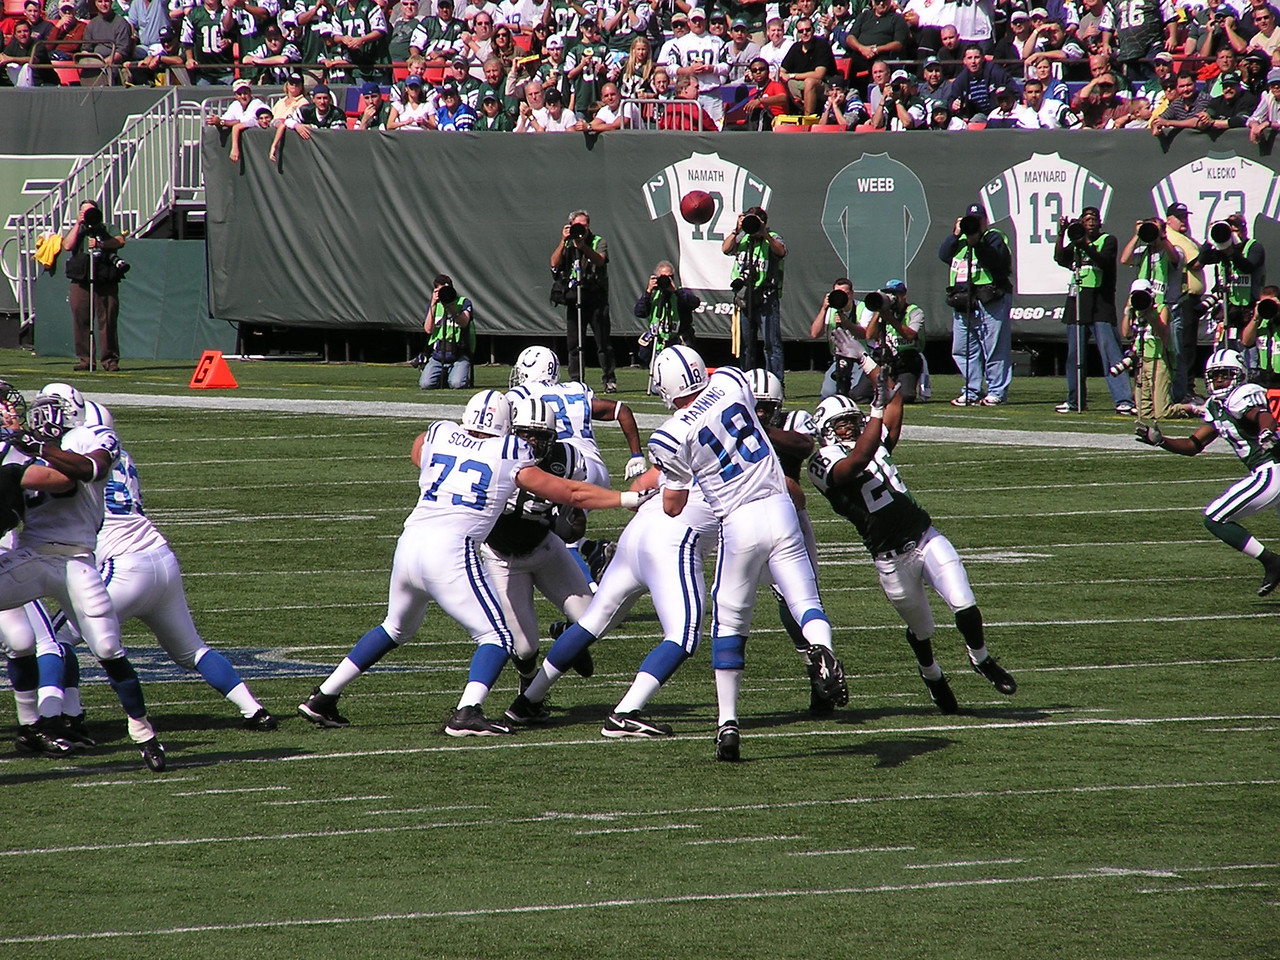 Manning completing a pass